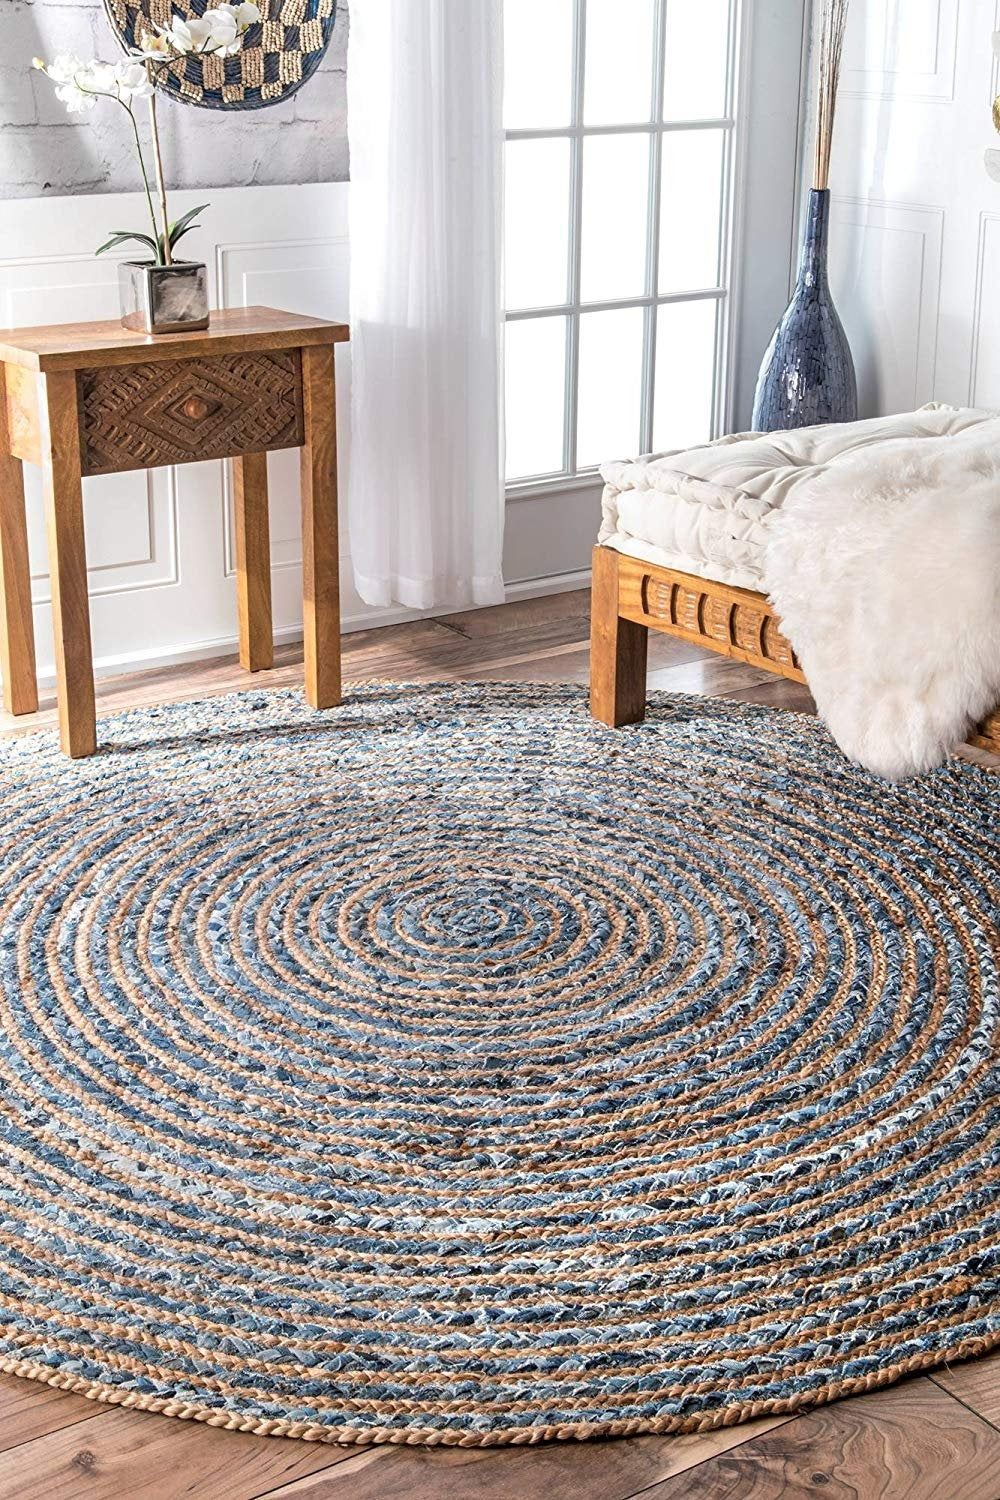 Indian Hand Braided Bohemian Colorful Cotton Chindi Area Rug Multi Colors Home Decor Rugs Cotton Area Rugs Floor Rug Circle Rug 5 Round Rug In 2020 Braided Rag Rugs Jute Round